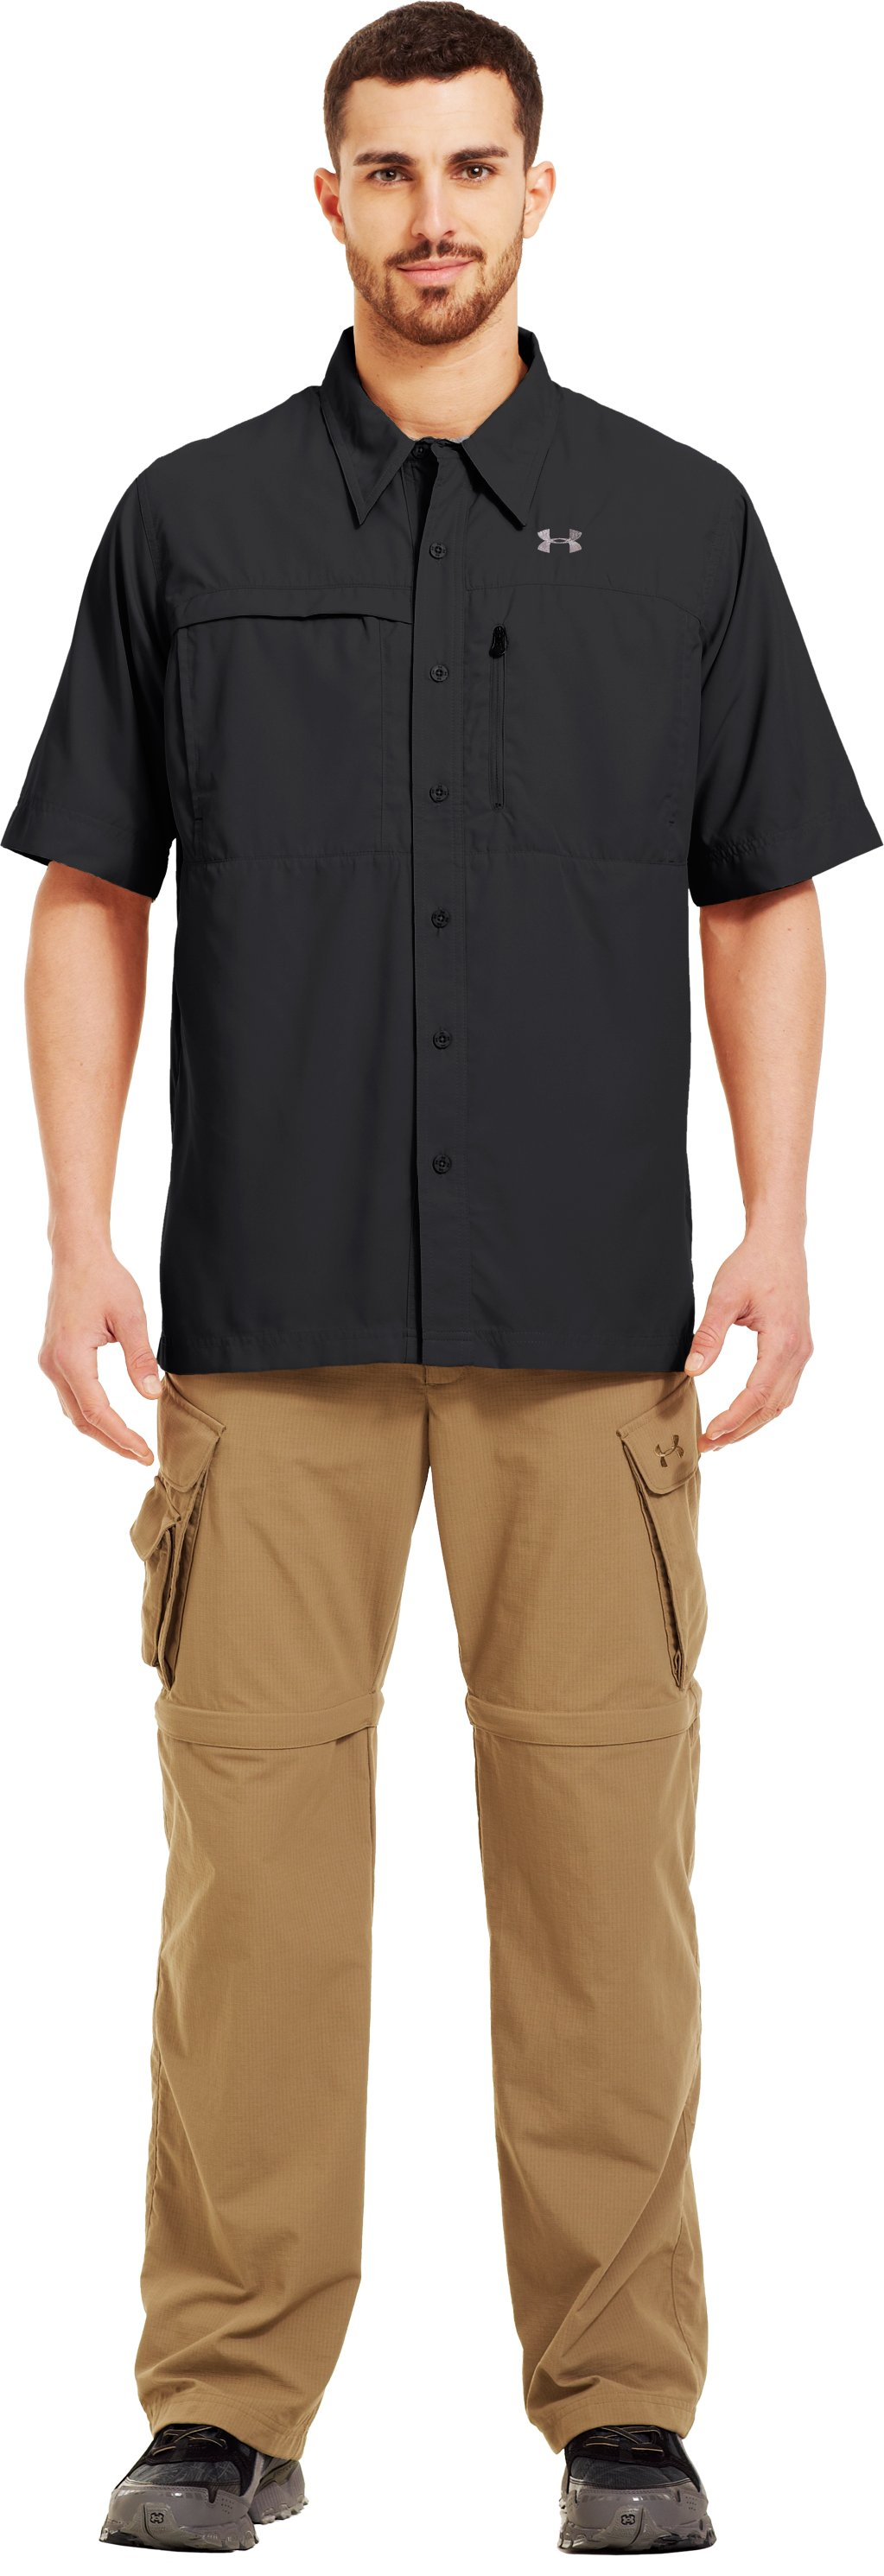 Men's Flats Guide Short Sleeve Shirt, Black , Front